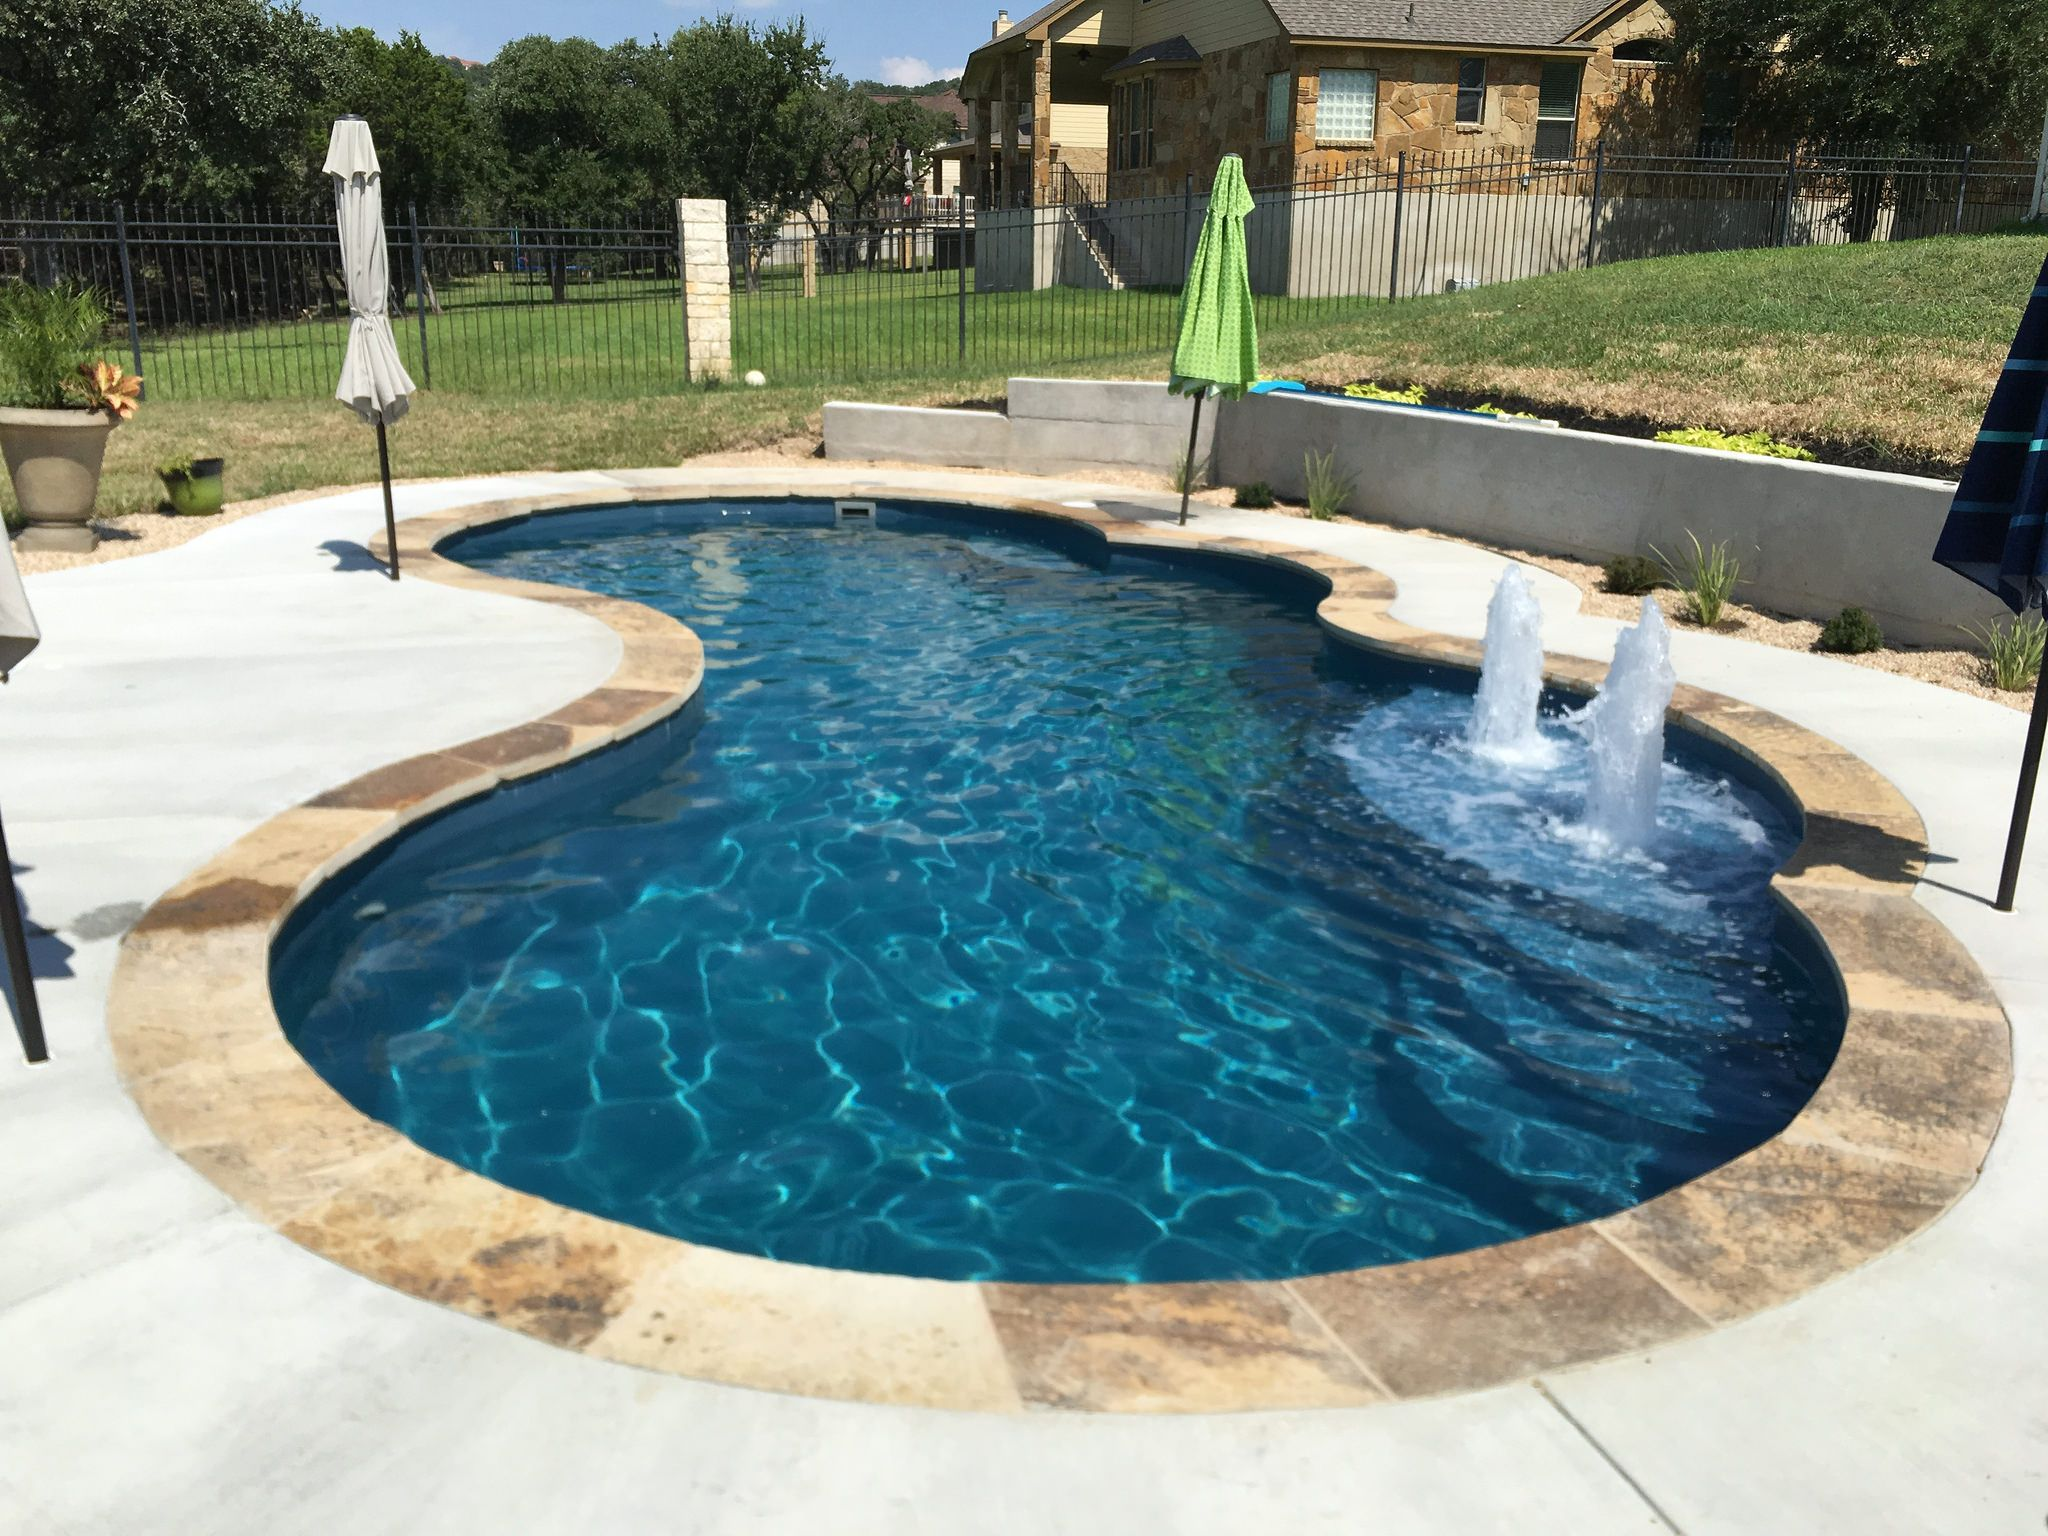 This 16 X 32 Gemini Shaped Fibergl Inground Pool Complete In Vega Color Sandstone Coping And Bubblers Is Perfect For Your Backyard Upgrade